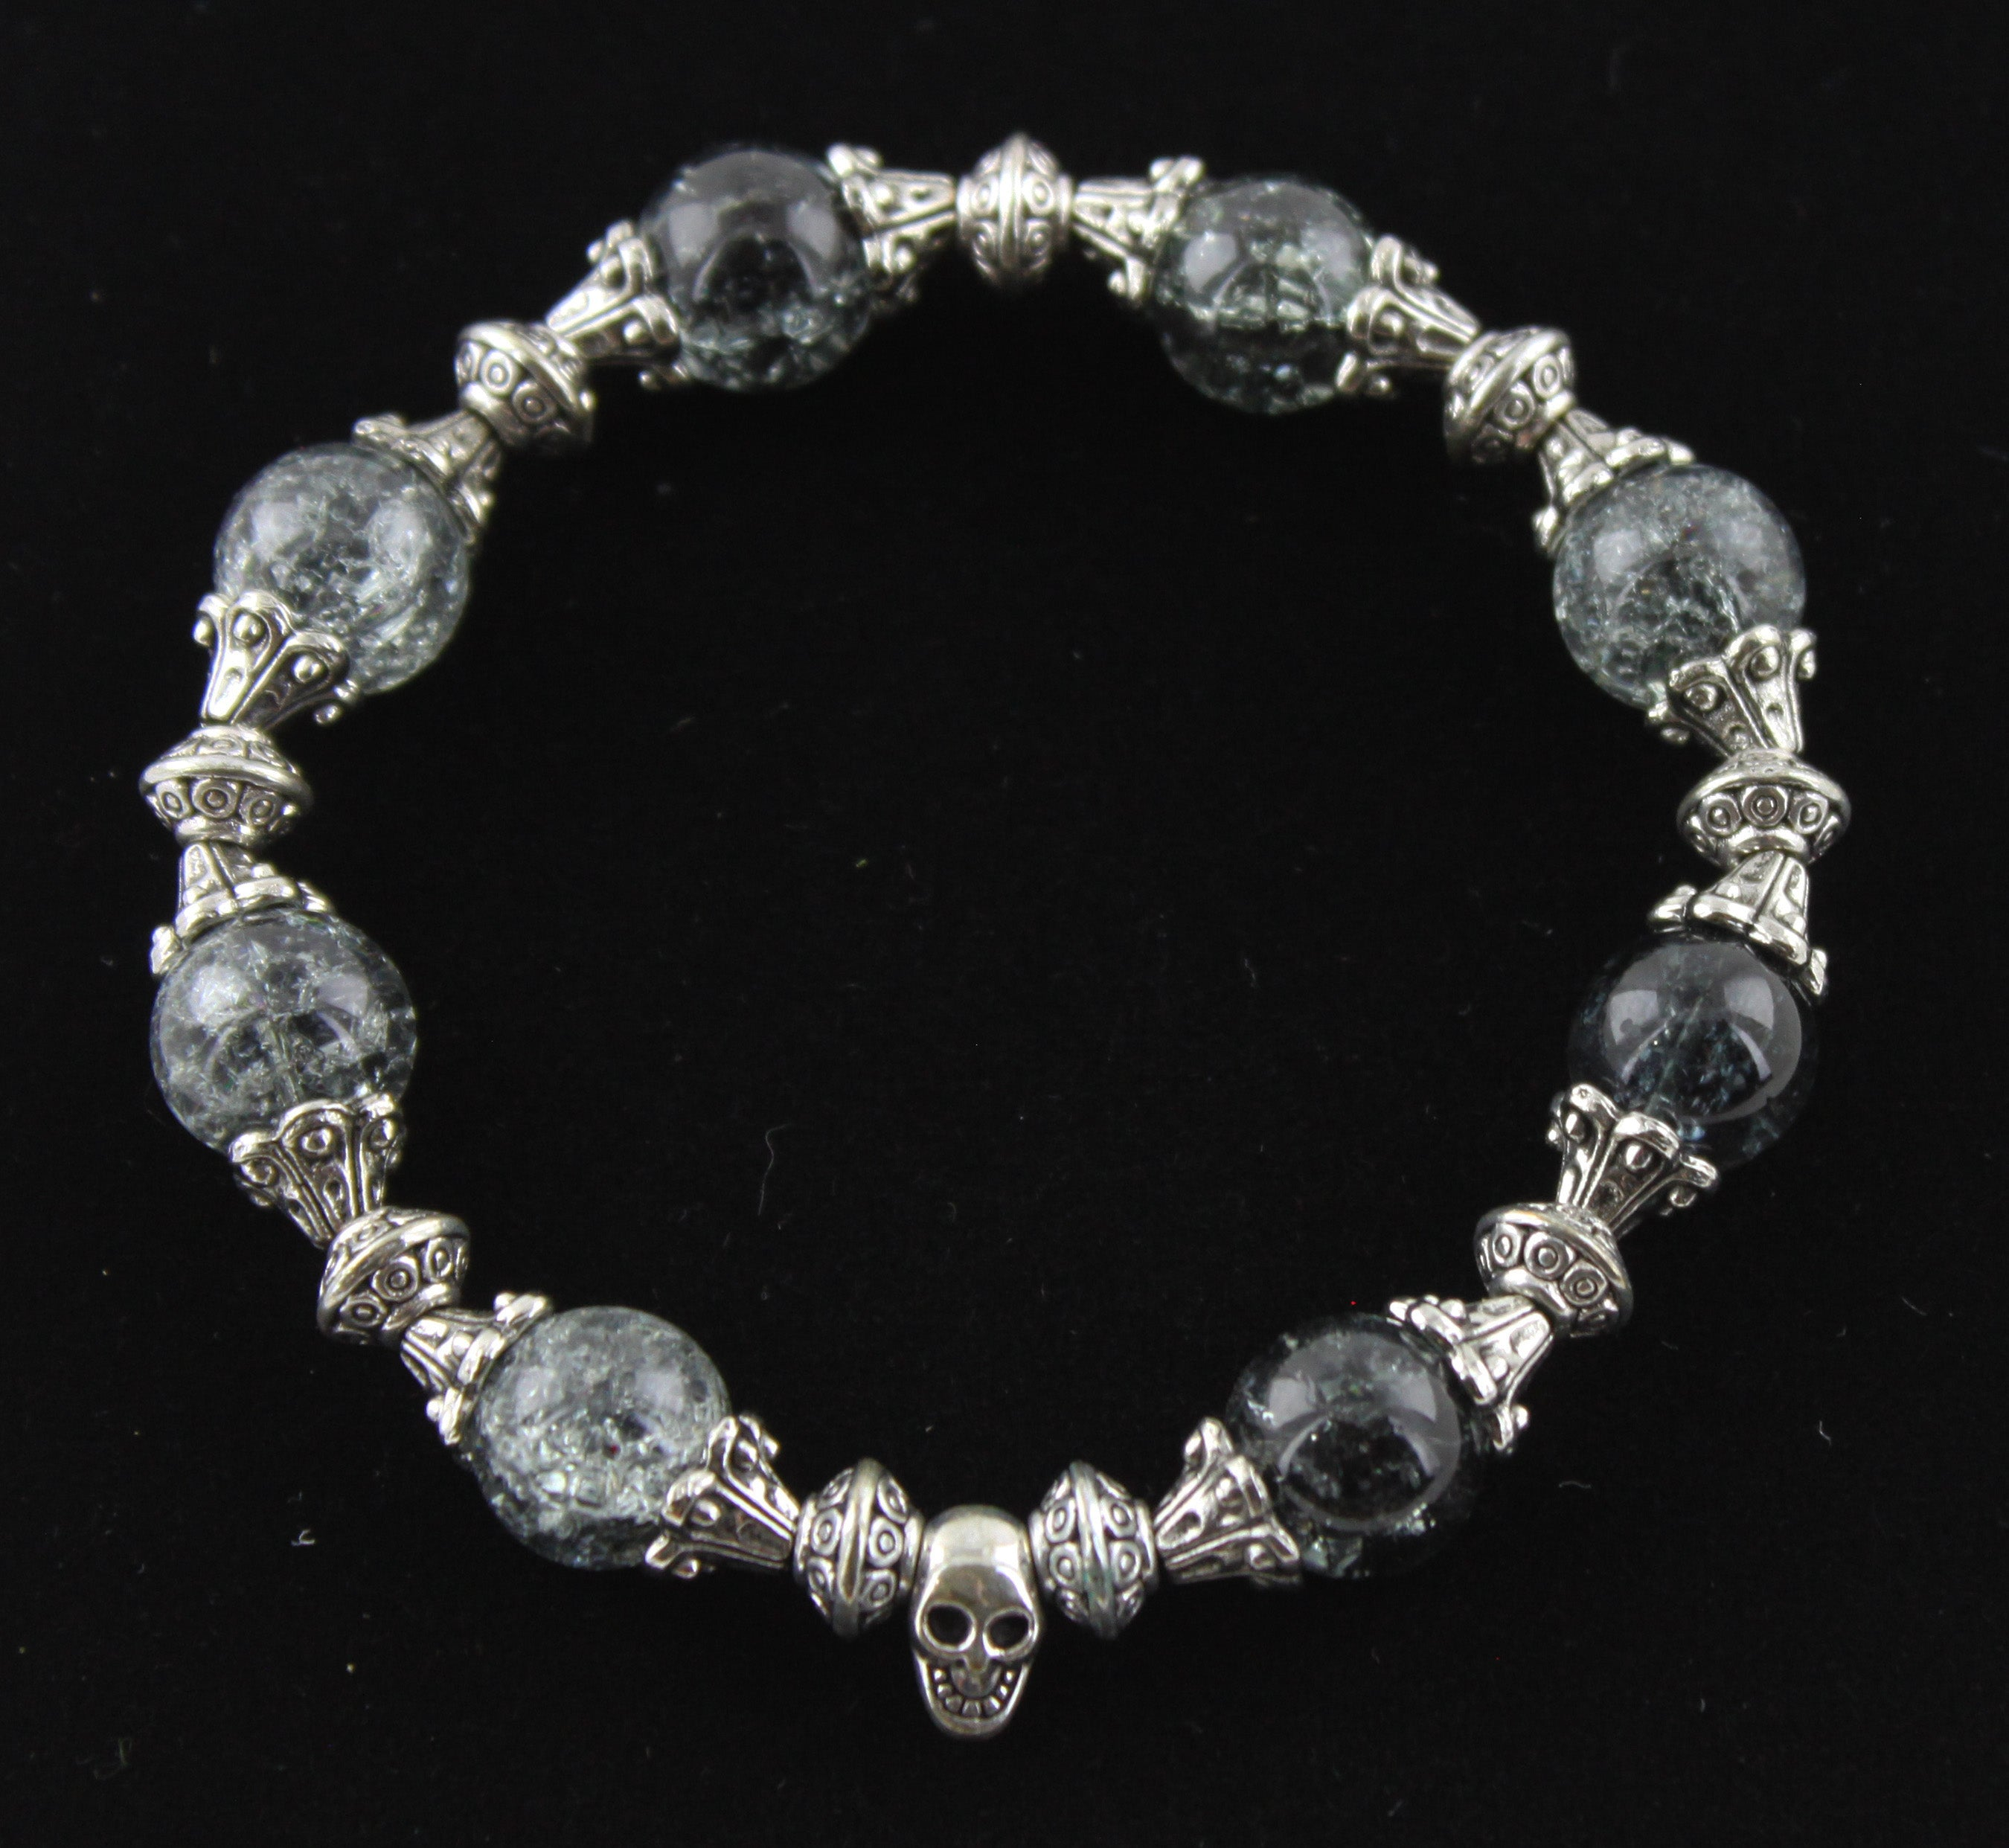 Cracked Glass & Metal Skull Bracelet